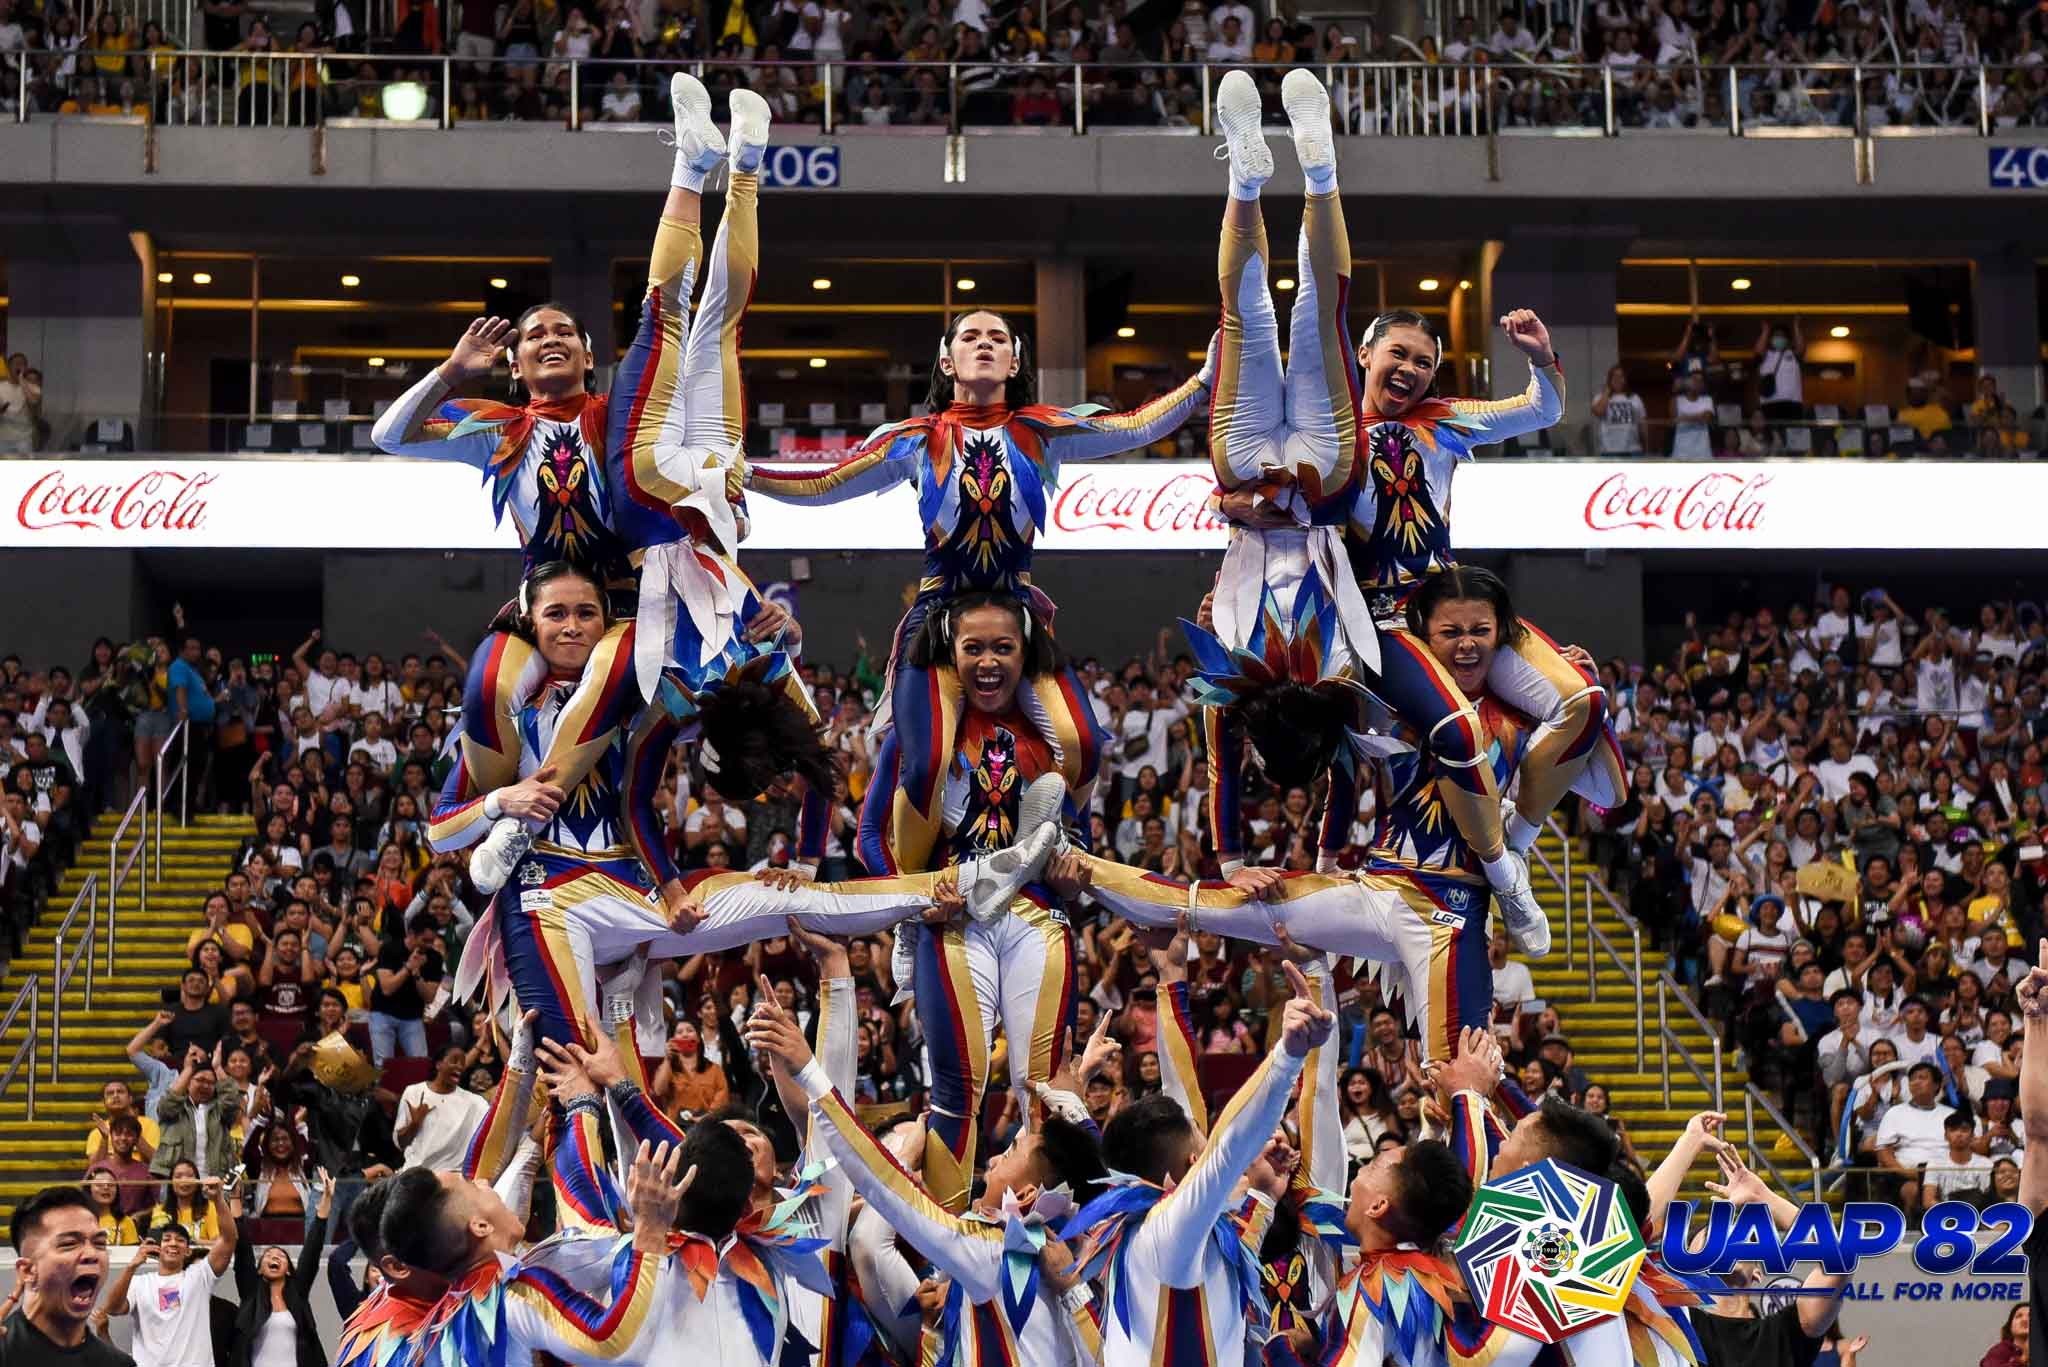 UAAP82-CDC-23RD-PHOTO-NU NU Pep Squad gives back with 'Balikbayan' performance Cheerleading News NU UAAP  - philippine sports news